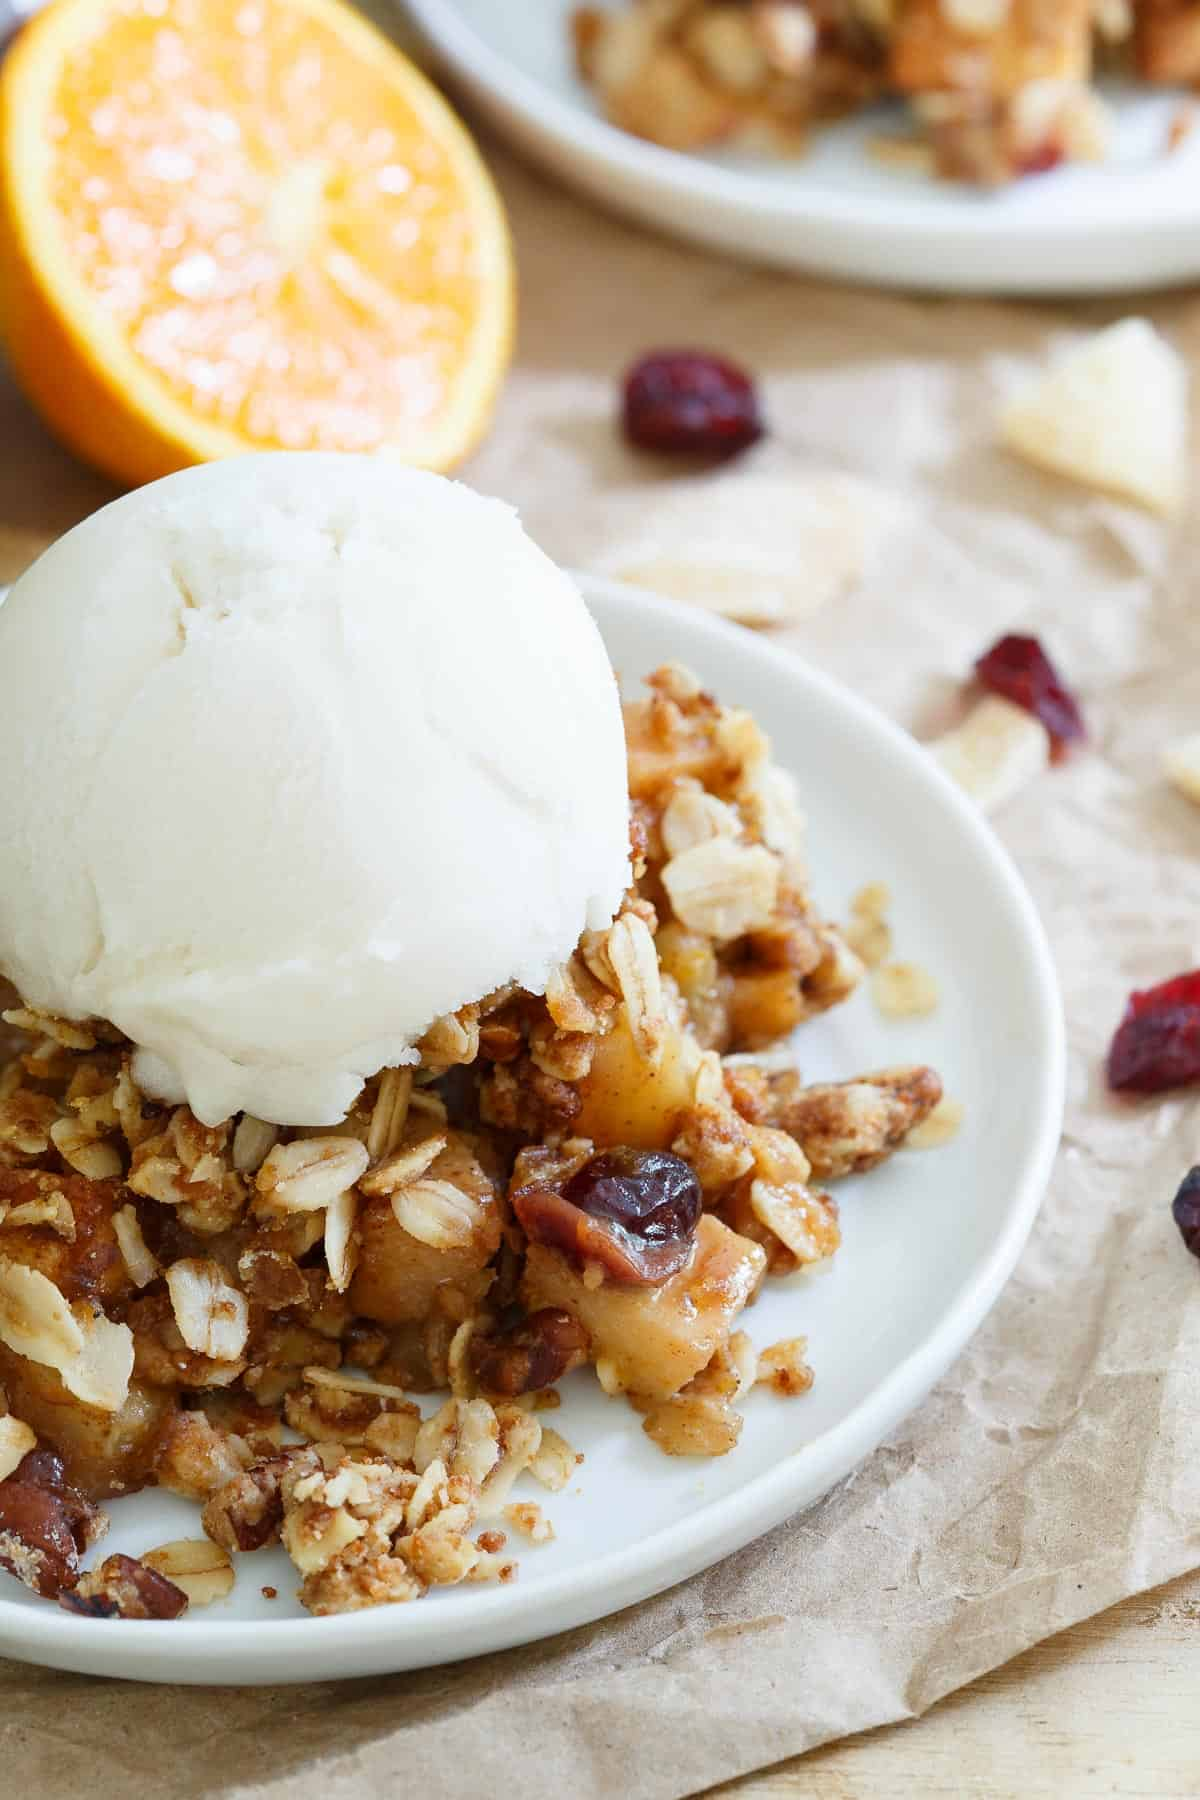 Orange Ginger Pear and Quince Crisp is even better with a scoop of vanilla ice cream. Grab your spoon and enjoy!